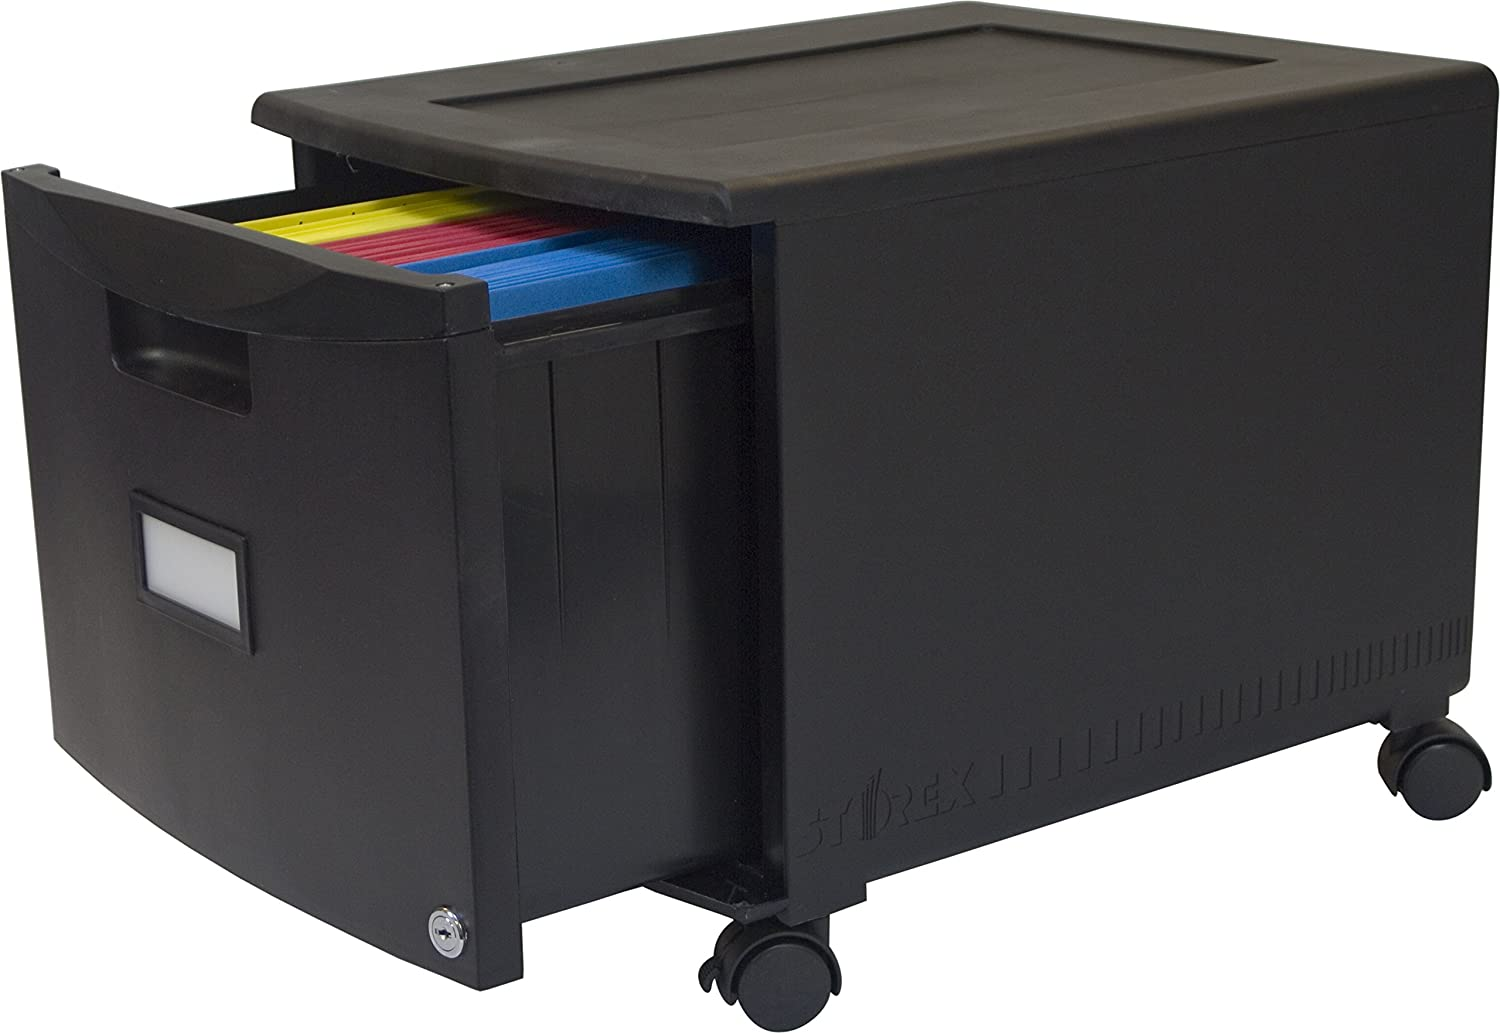 View mobile site about digitalbuyer com affiliate program site map - Amazon Com Storex Single Drawer Mini File Cabinet With Lock Casters 18 25 X 14 75 X 12 75 Inches Gray Black 61266b01c Office Products